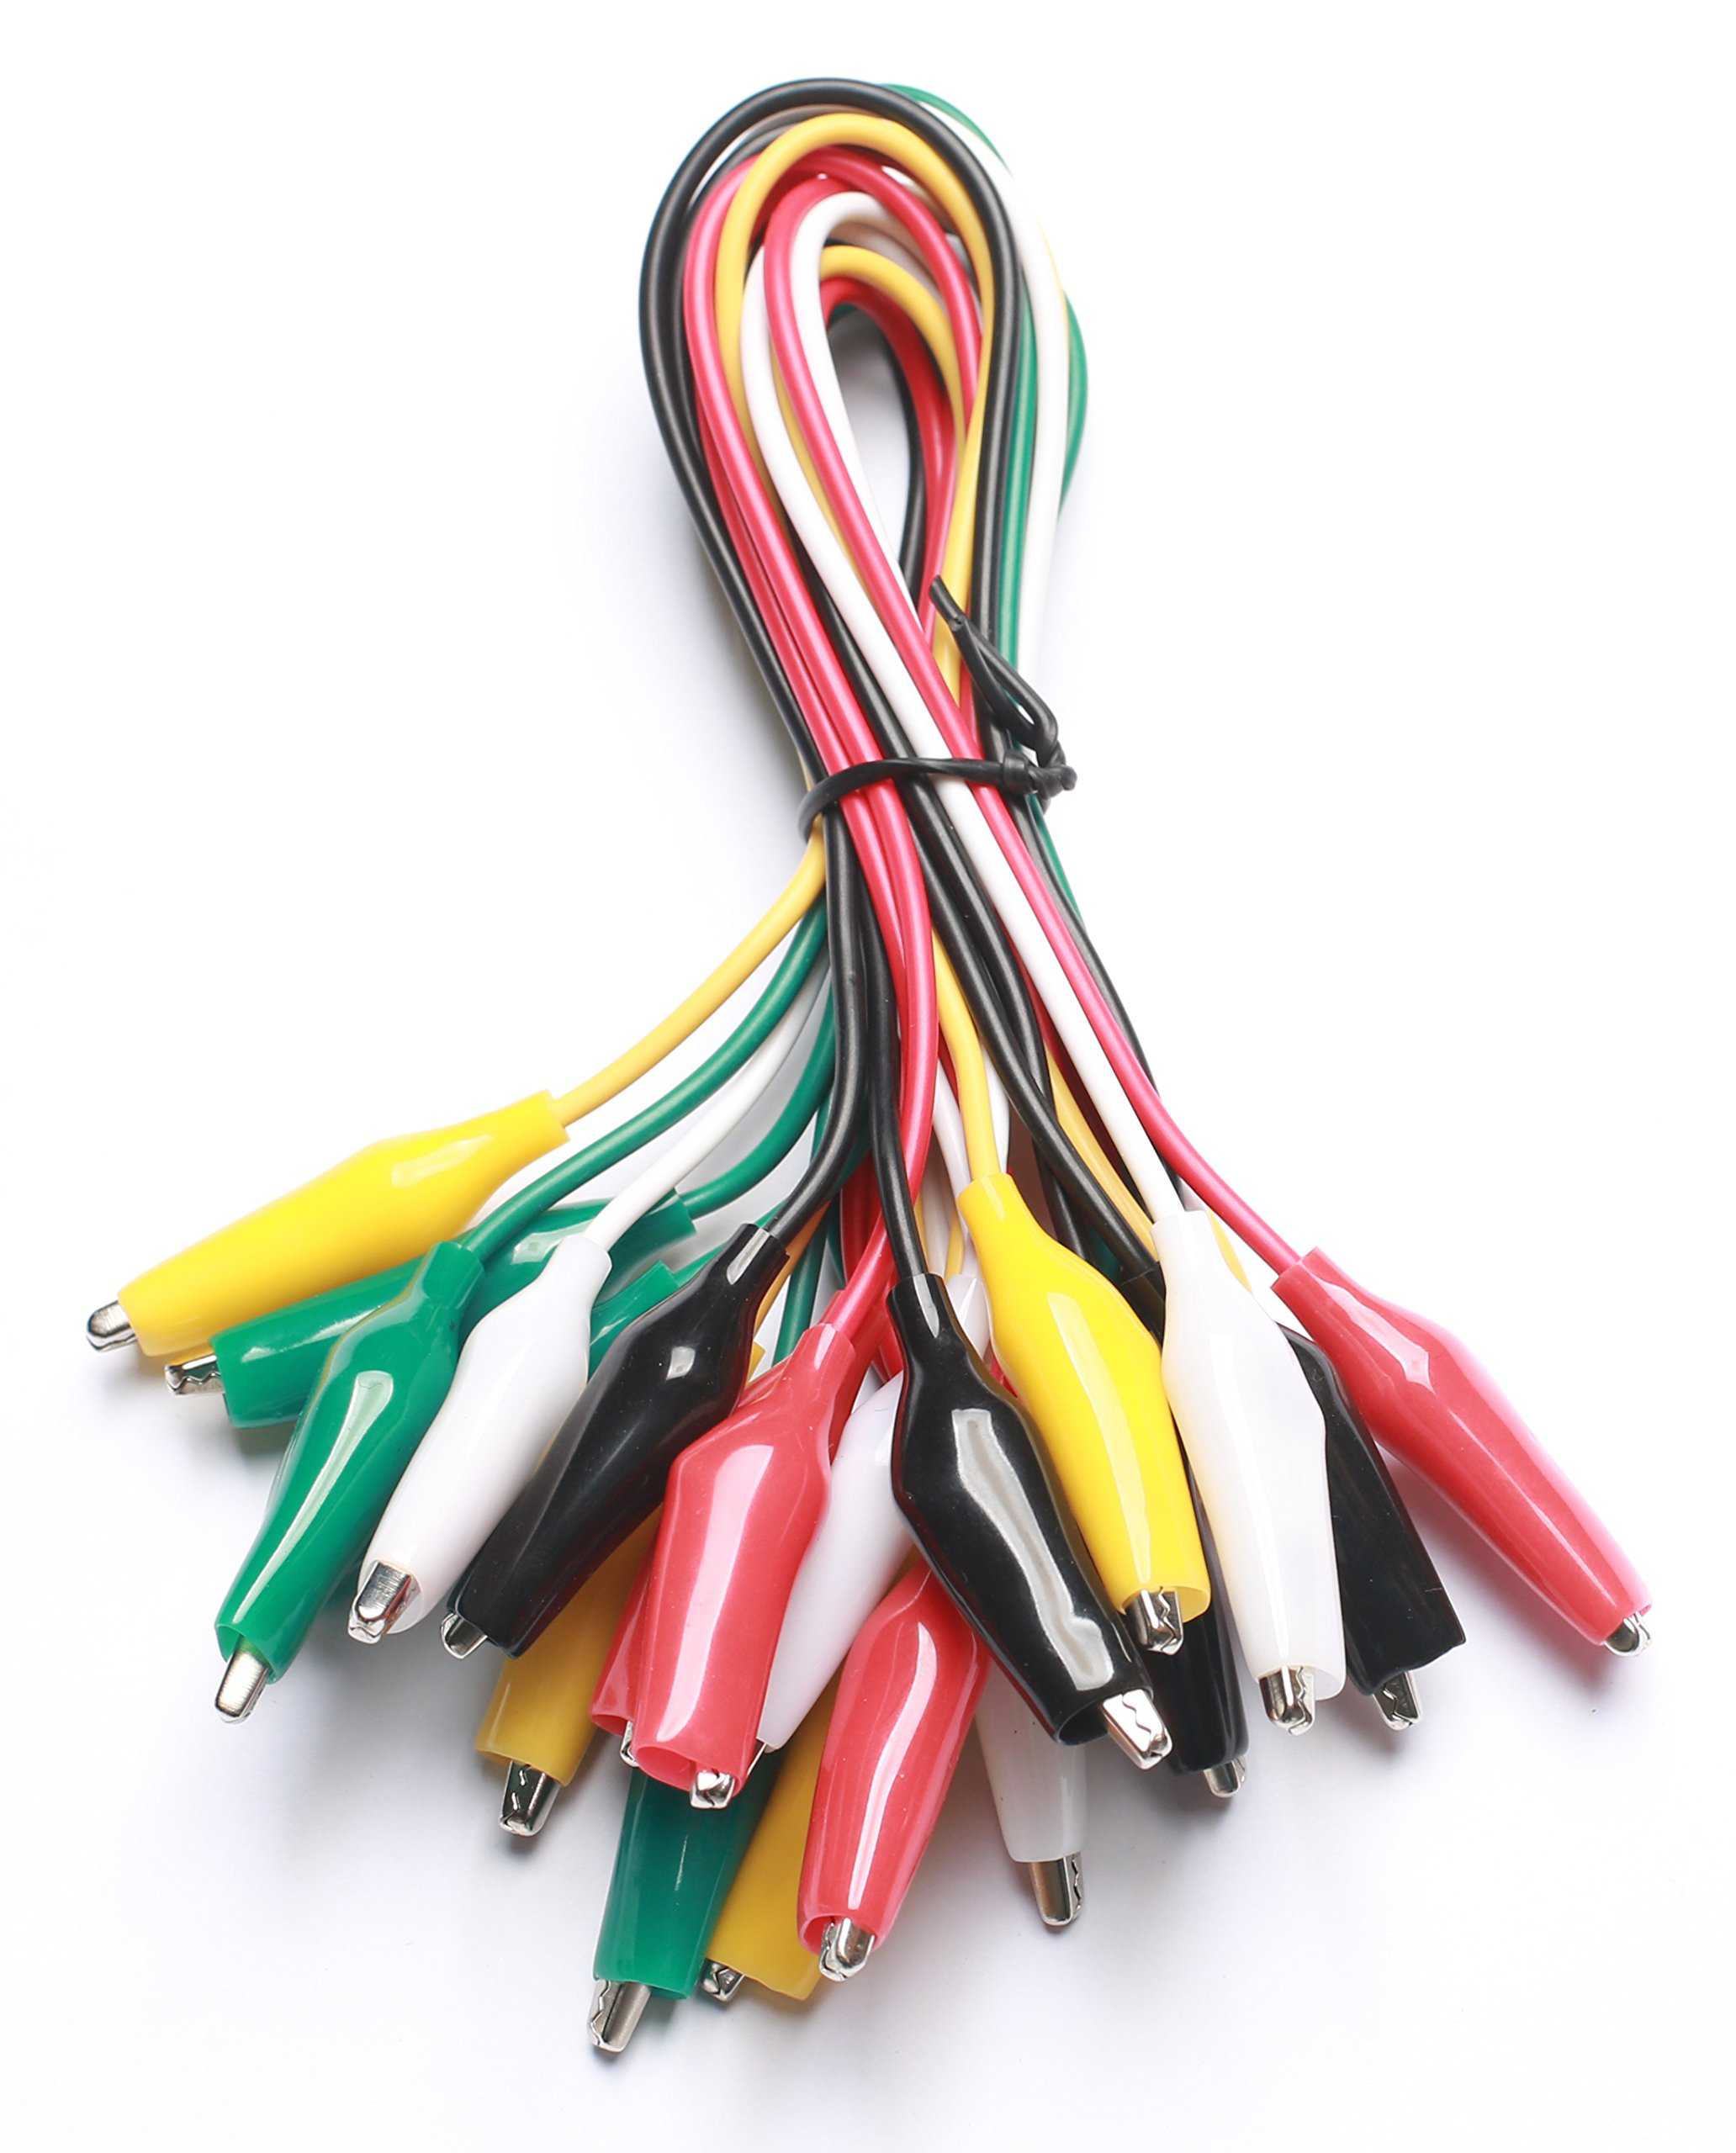 WGGE WG-026 10 Pieces and 5 Colors Test Lead Set & Alligator Clips,